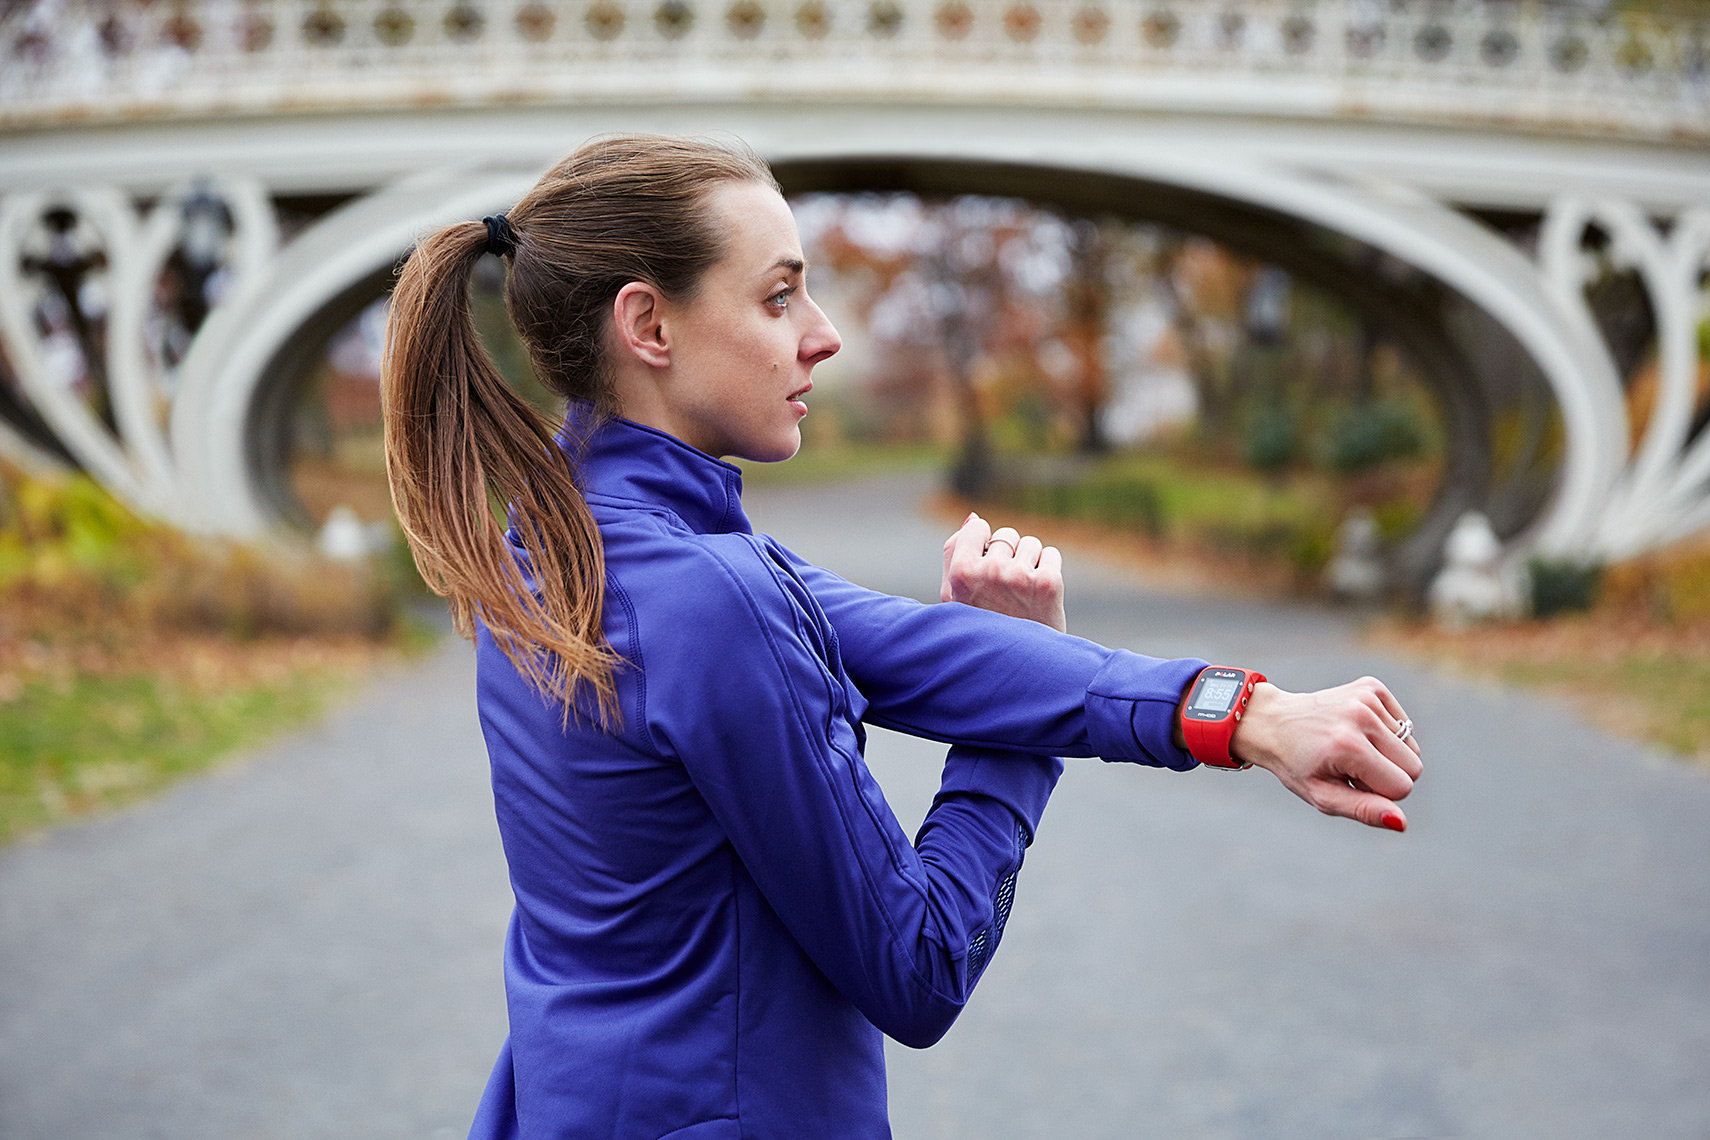 Philadelphia Photographer STEVE BOYLE - Polar Heartrate Monitors, Fitness Trackers and GPS Watches - Molly Huddle - Running